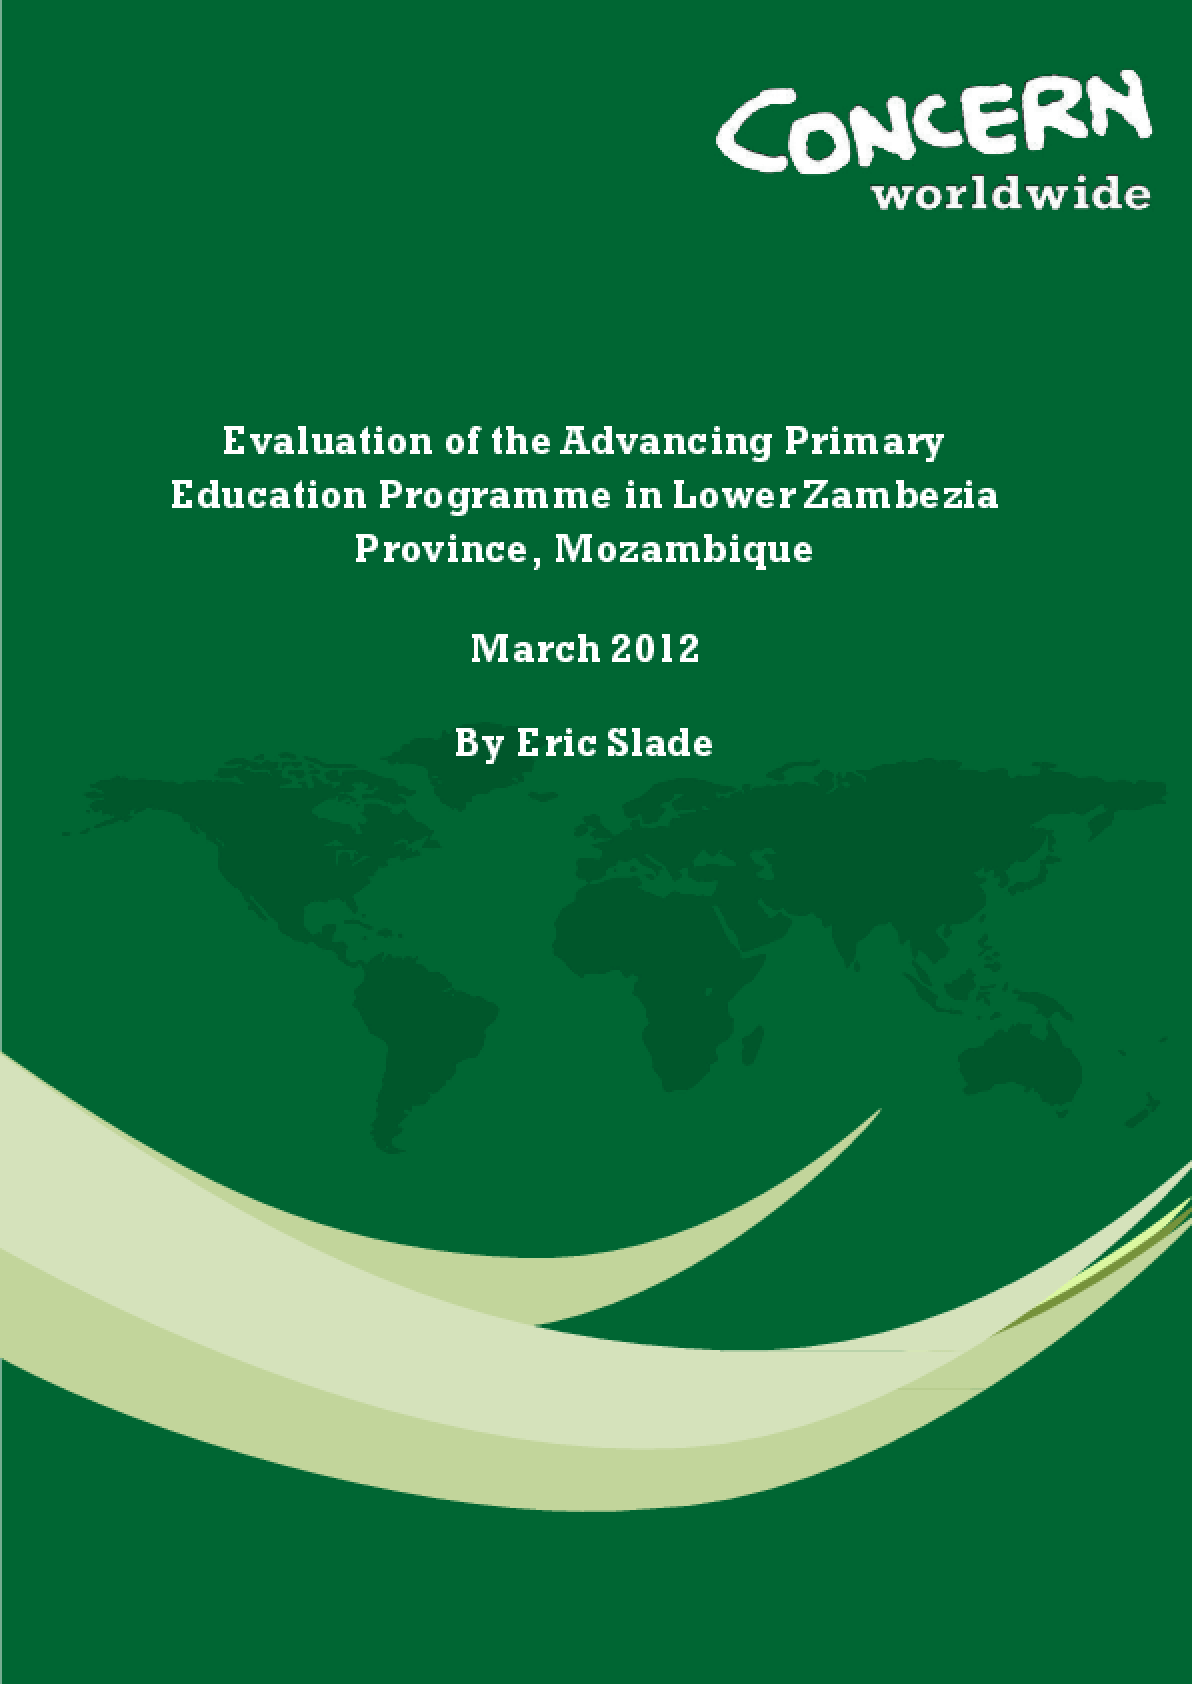 Evaluation of the Advancing Primary Education Programme in Lower Zambezia Province, Mozambique